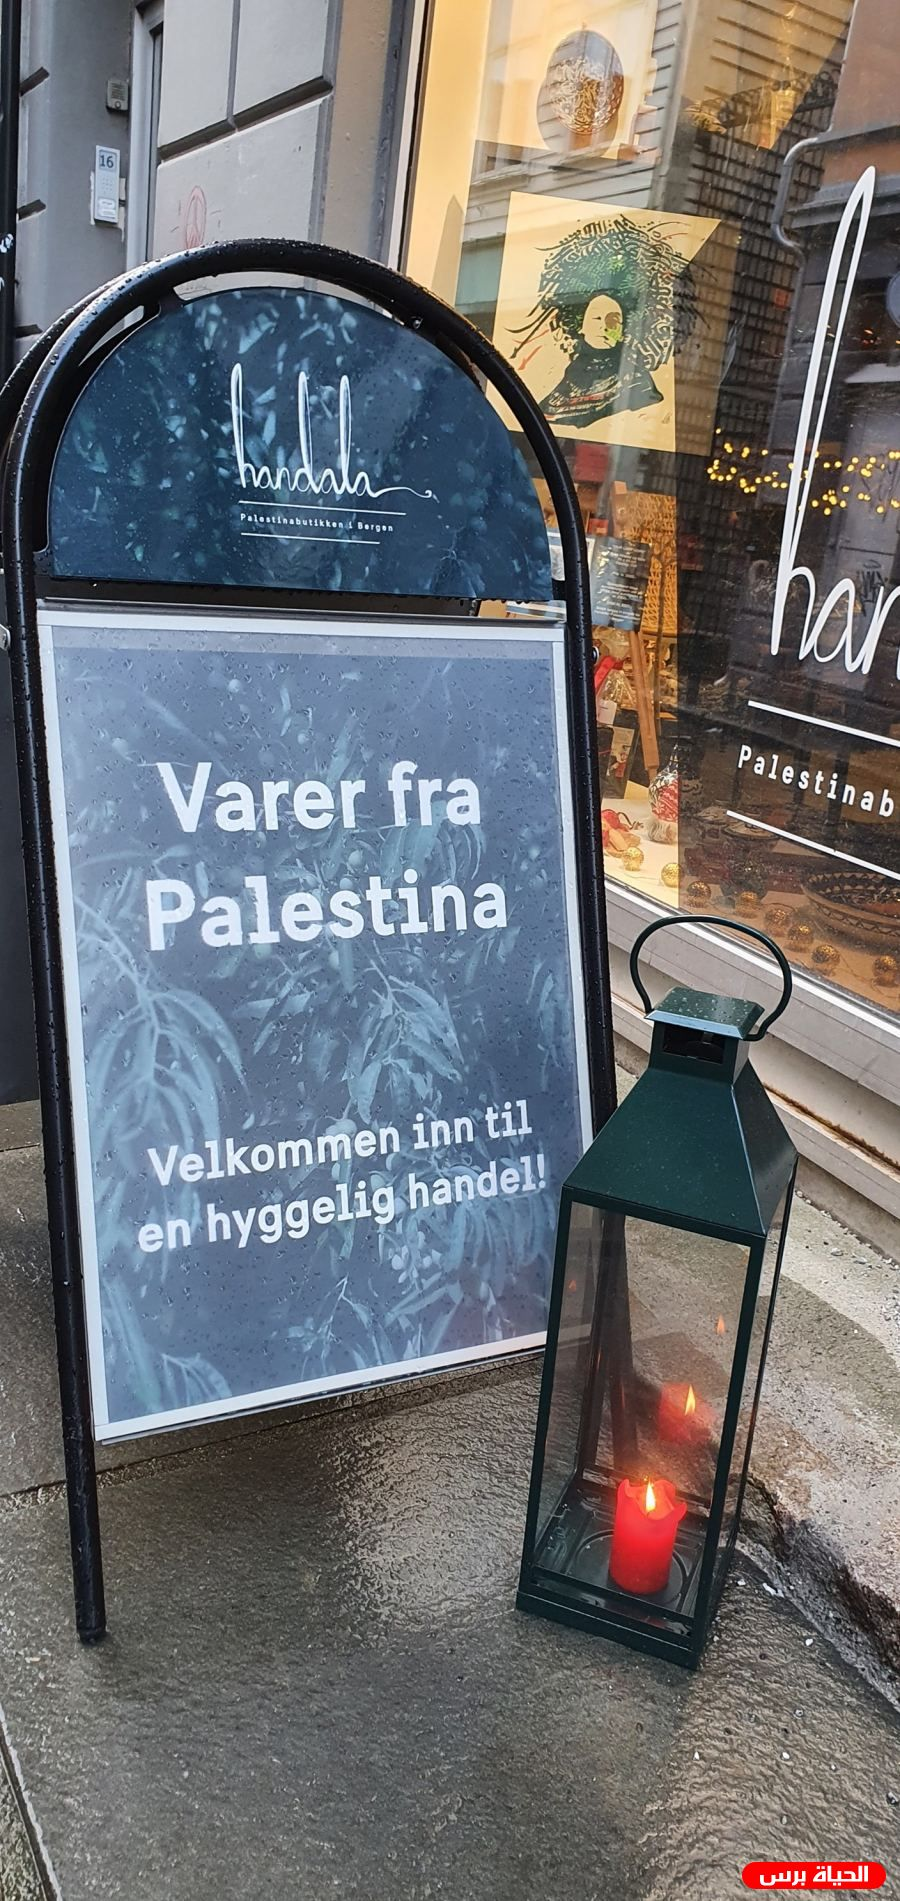 Kenneth Larsen, Norwegian friend of Palestine and founder of Handala store in Oslo, dead at 66